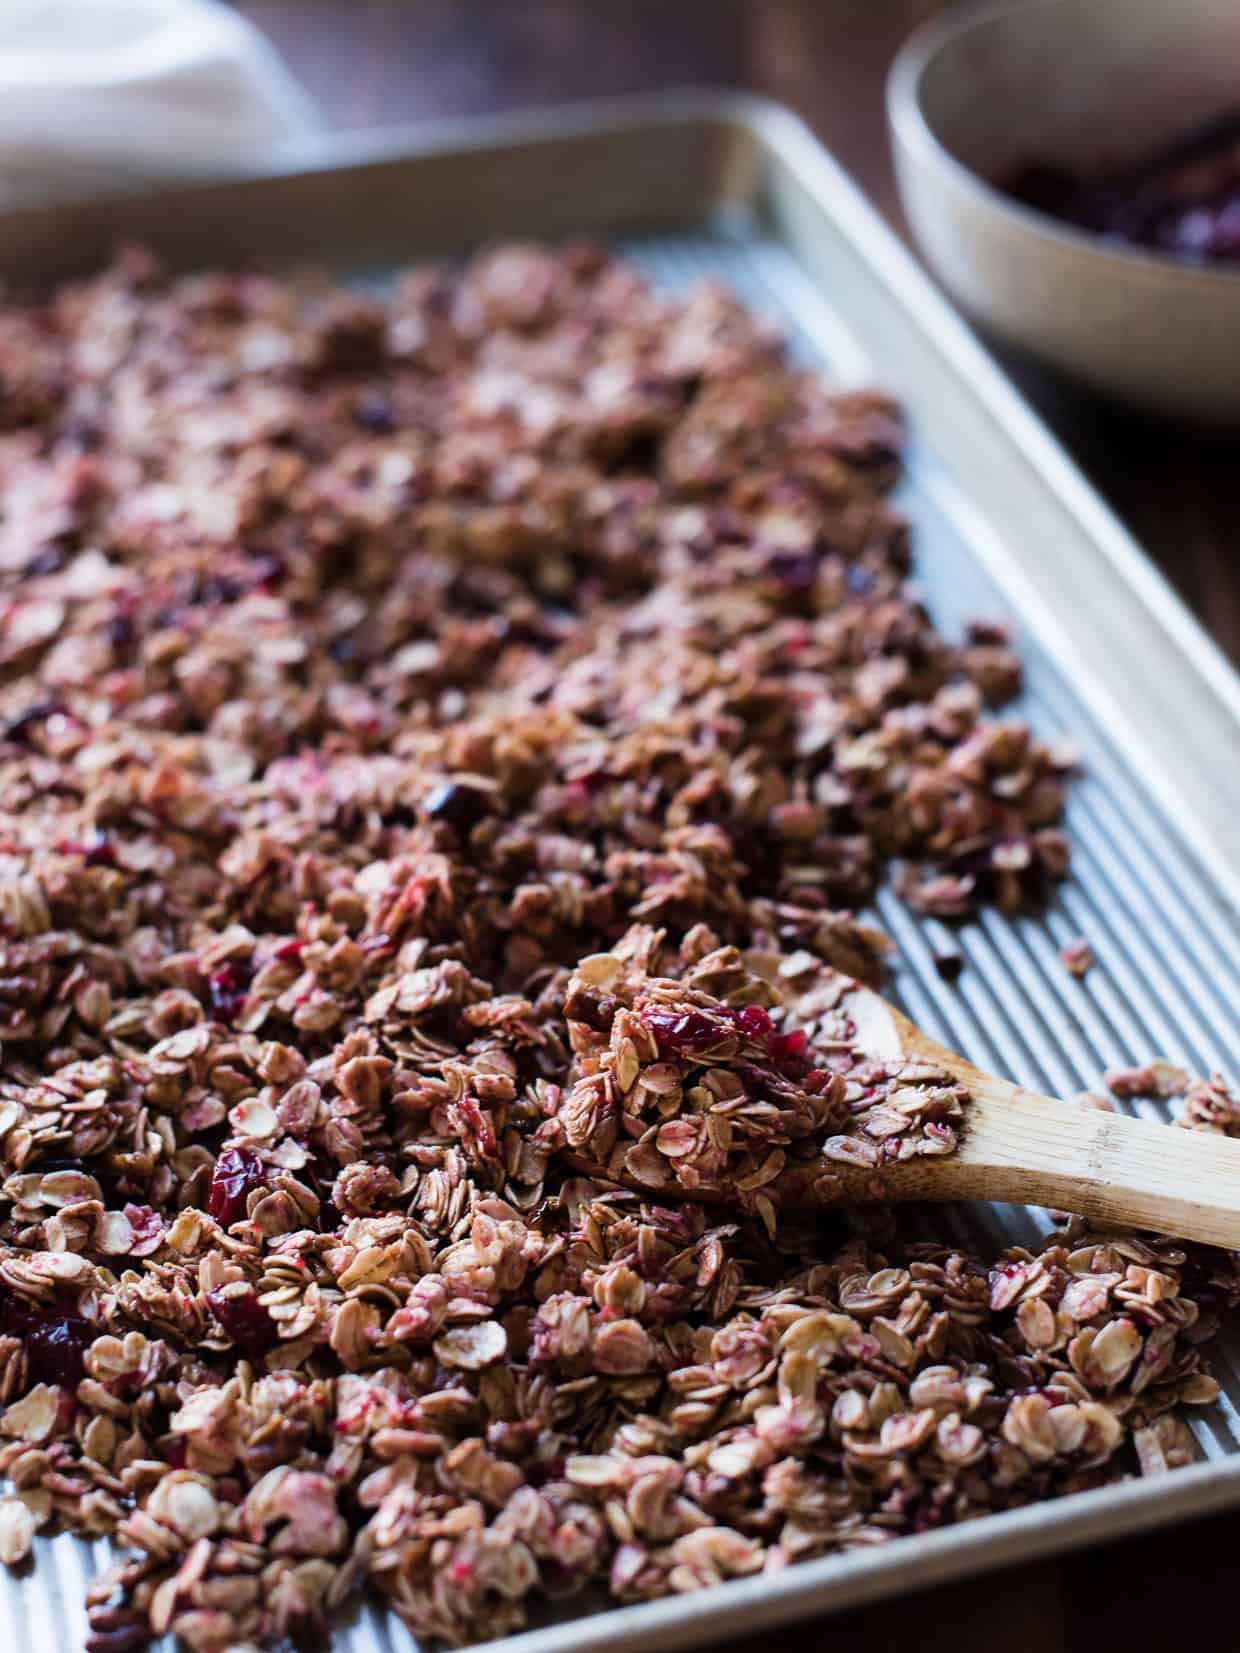 Sheet pan filled with Cranberry Sauce Granola to bake.